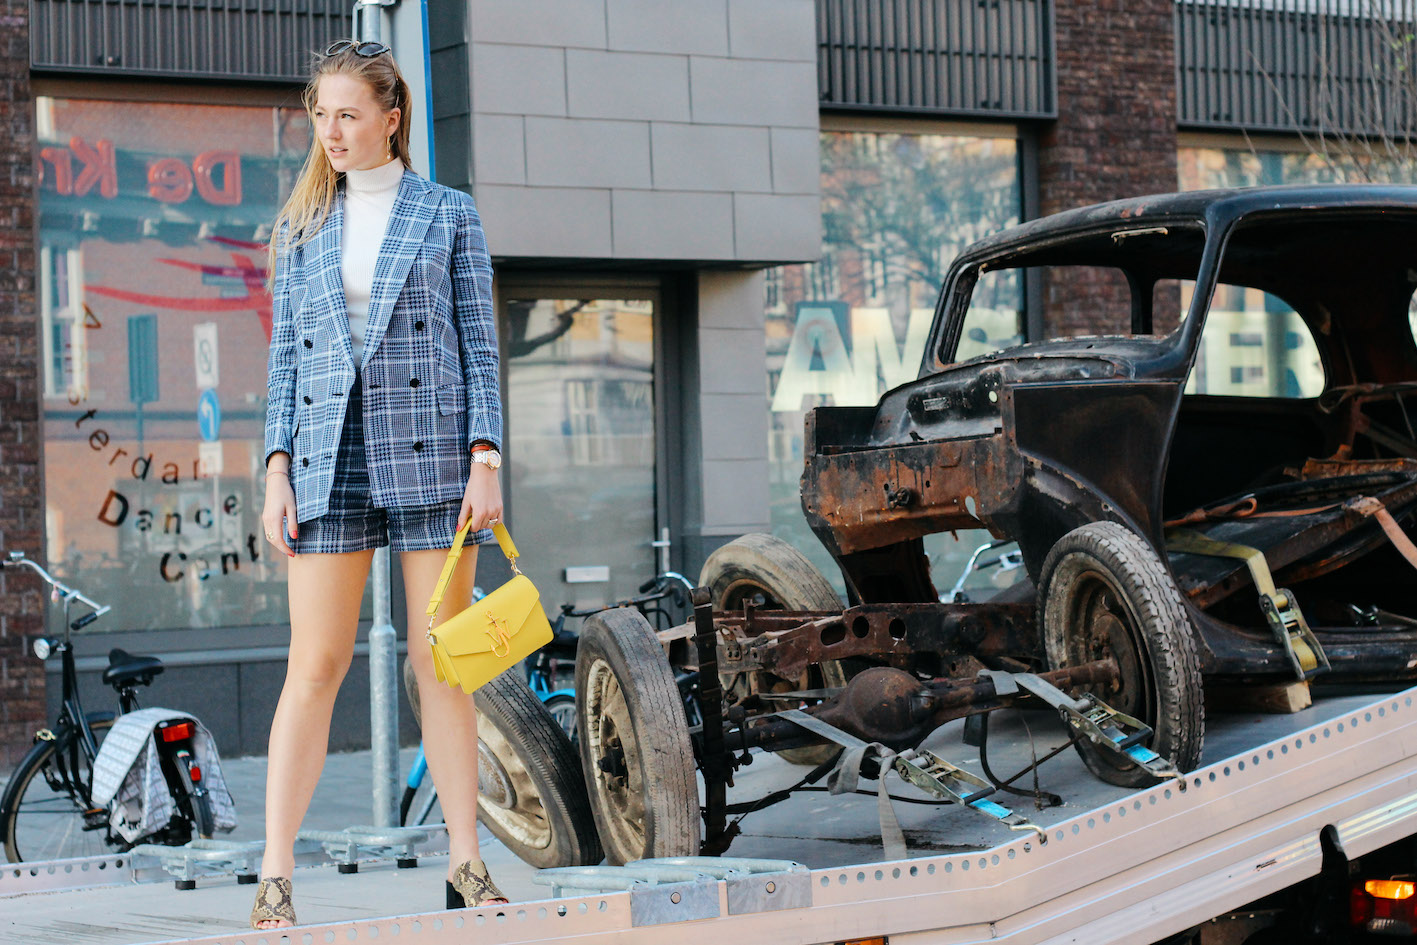 floortjeloves, suistudio, Suistudio suit, suit, tweed, tweed suit, blue suit, blazer, shorts, j.w. Anderson. jw Anderson, jw Anderson bag, Chloe sandals, mules, Chloe mules, snake print, tweed, snake print mules, miu miu sunglasses, miumiu, miu miu, miumiu sunglasses, suistudio turtleneck, suistudio top